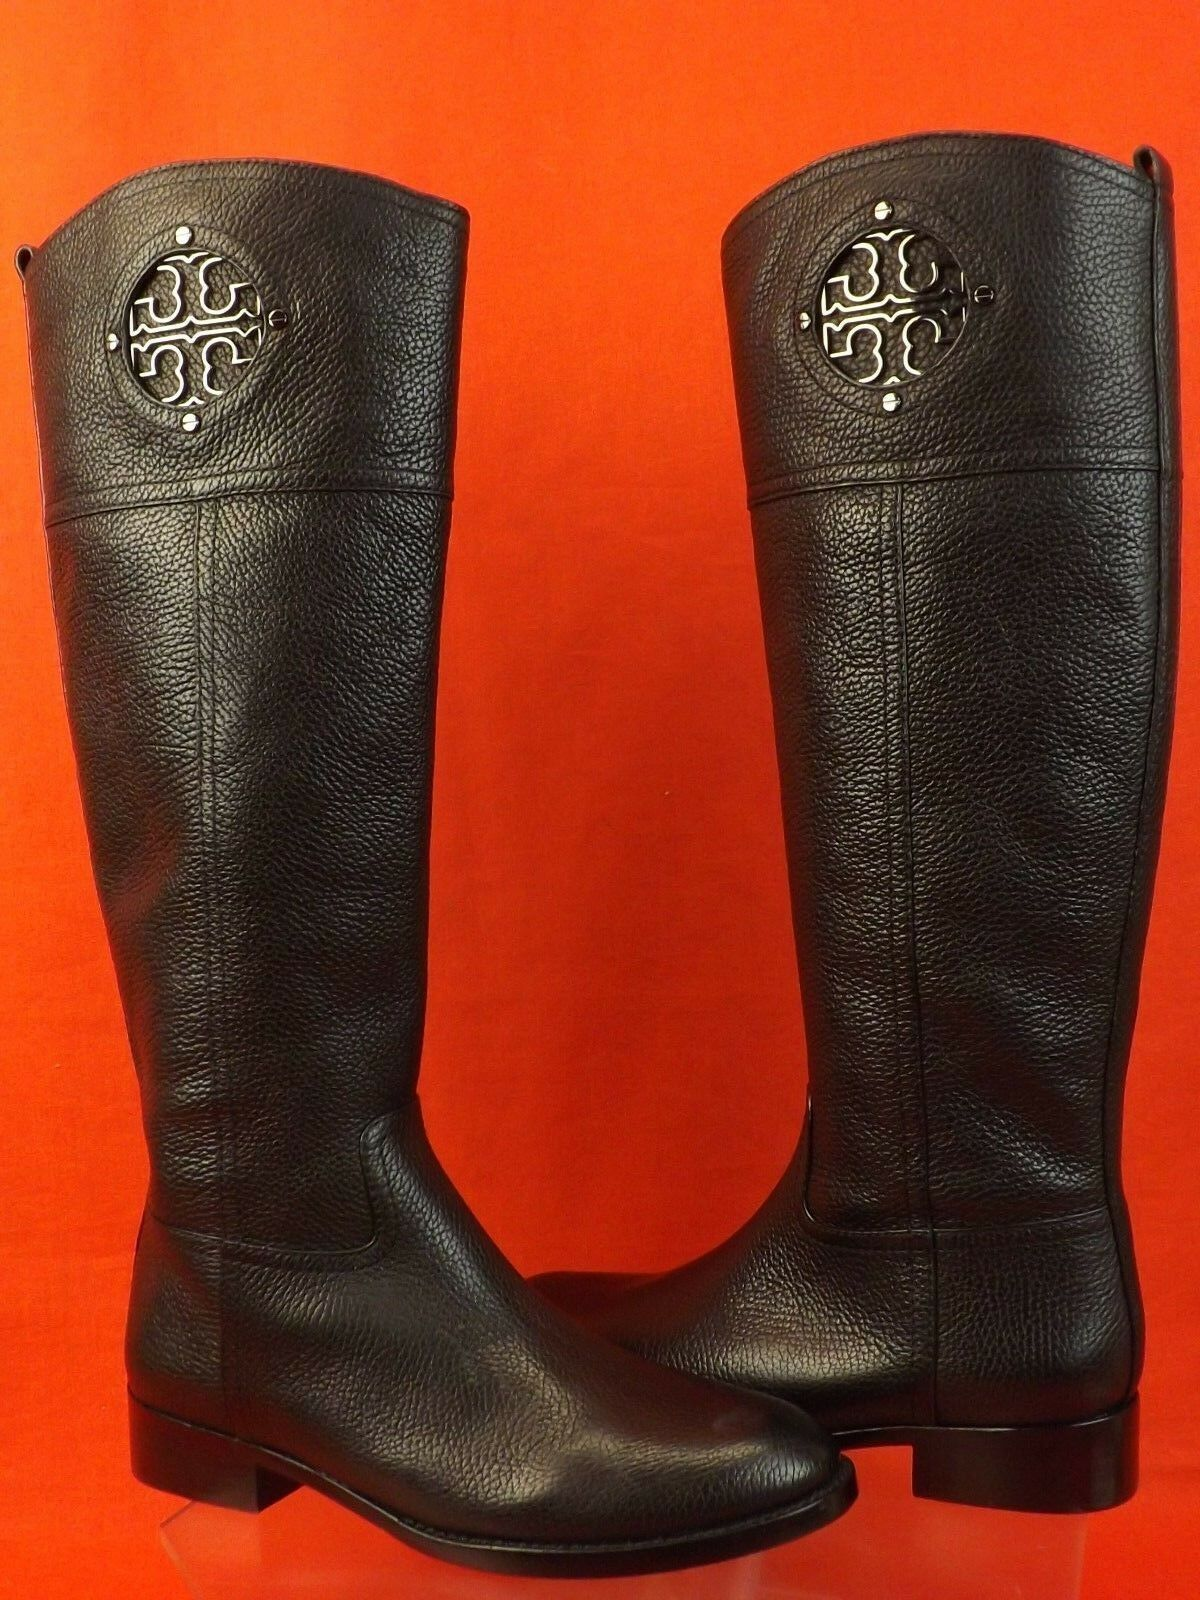 NIB NIB NIB TORY BURCH KIERNAN schwarz TUMBLED LEATHER REVA TALL RIDING Stiefel 7.5  495 8fa2fa